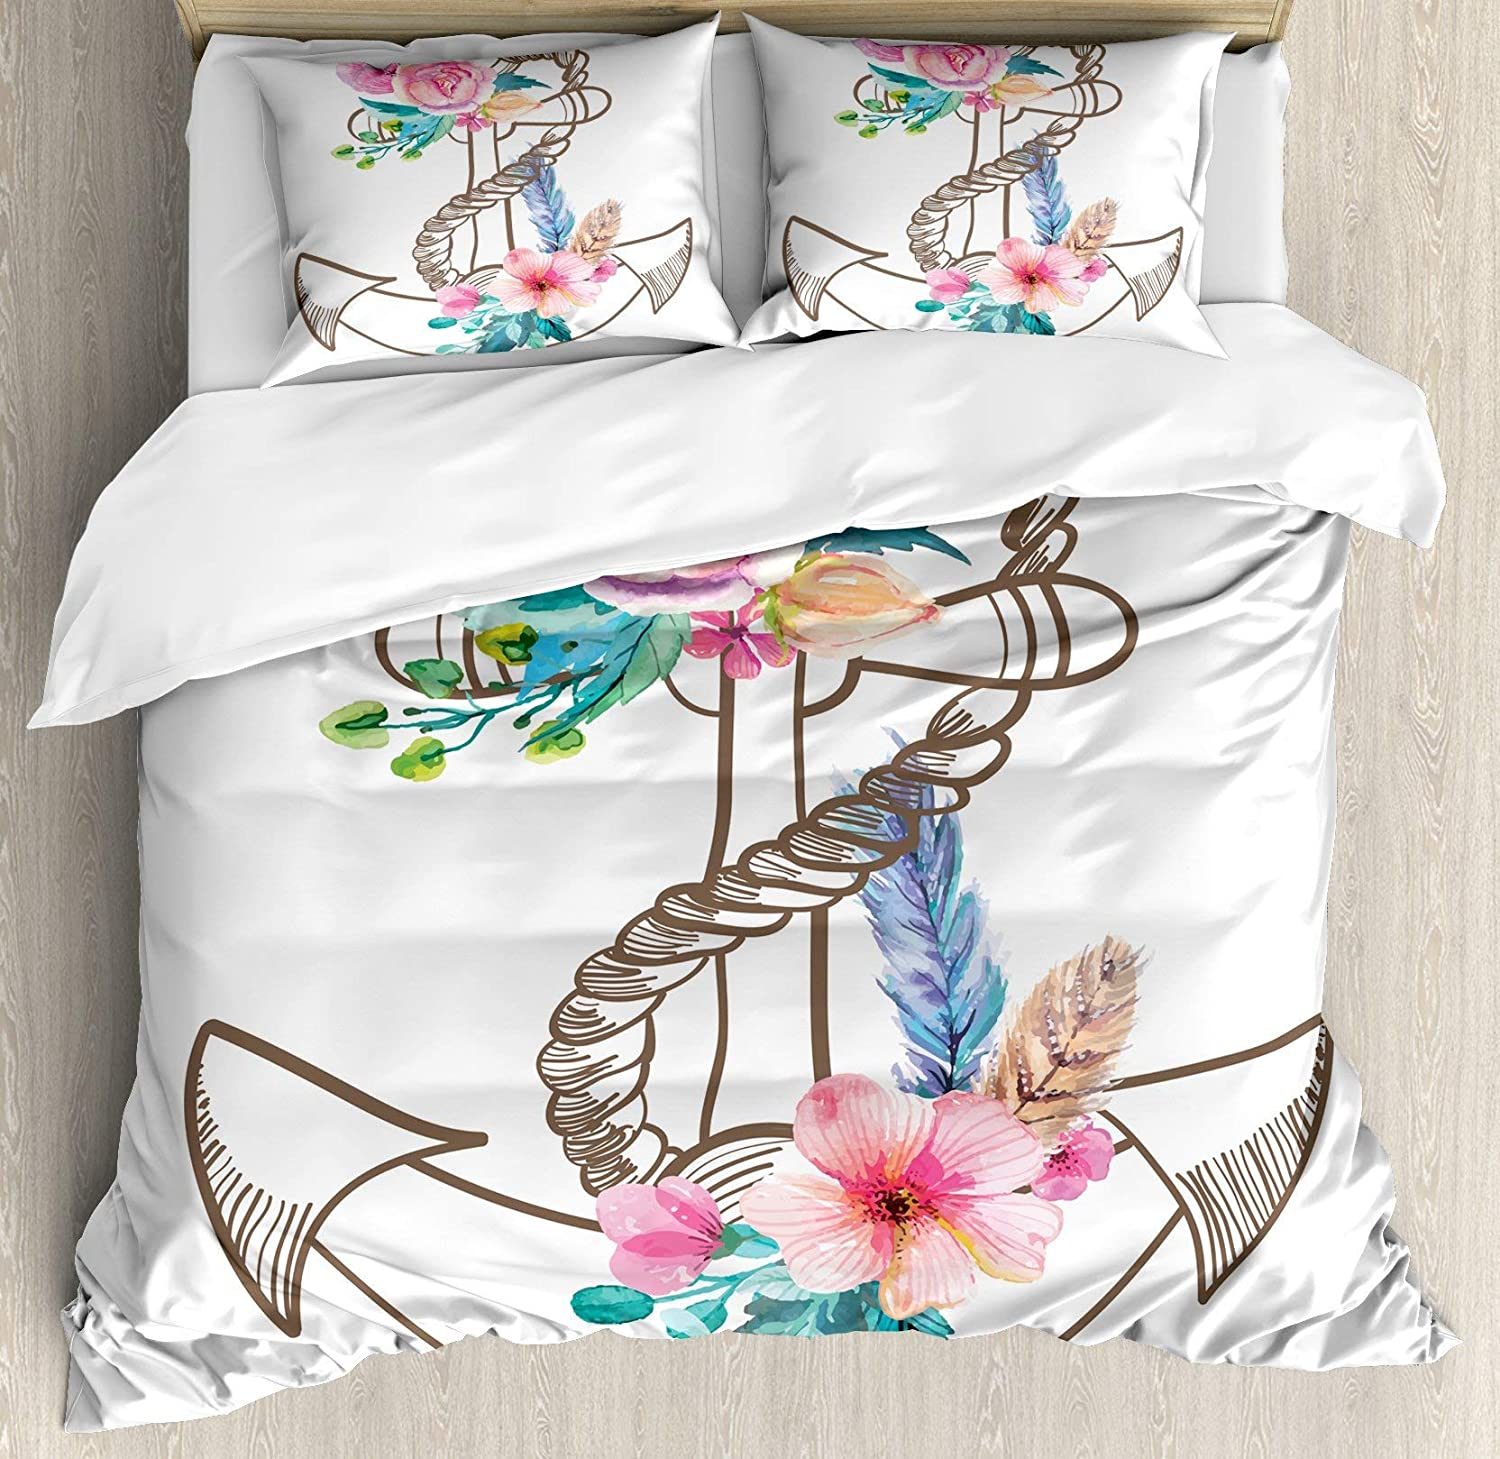 Multi 5 Twin BULING Anchor 4pc Bedding Set Twin Size, Watercolor Spring Blossoms Feathers on a Doodle Style Anchor Floral Lightweight Microfiber Duvet Cover Set, Brown Pale Pink Turquoise